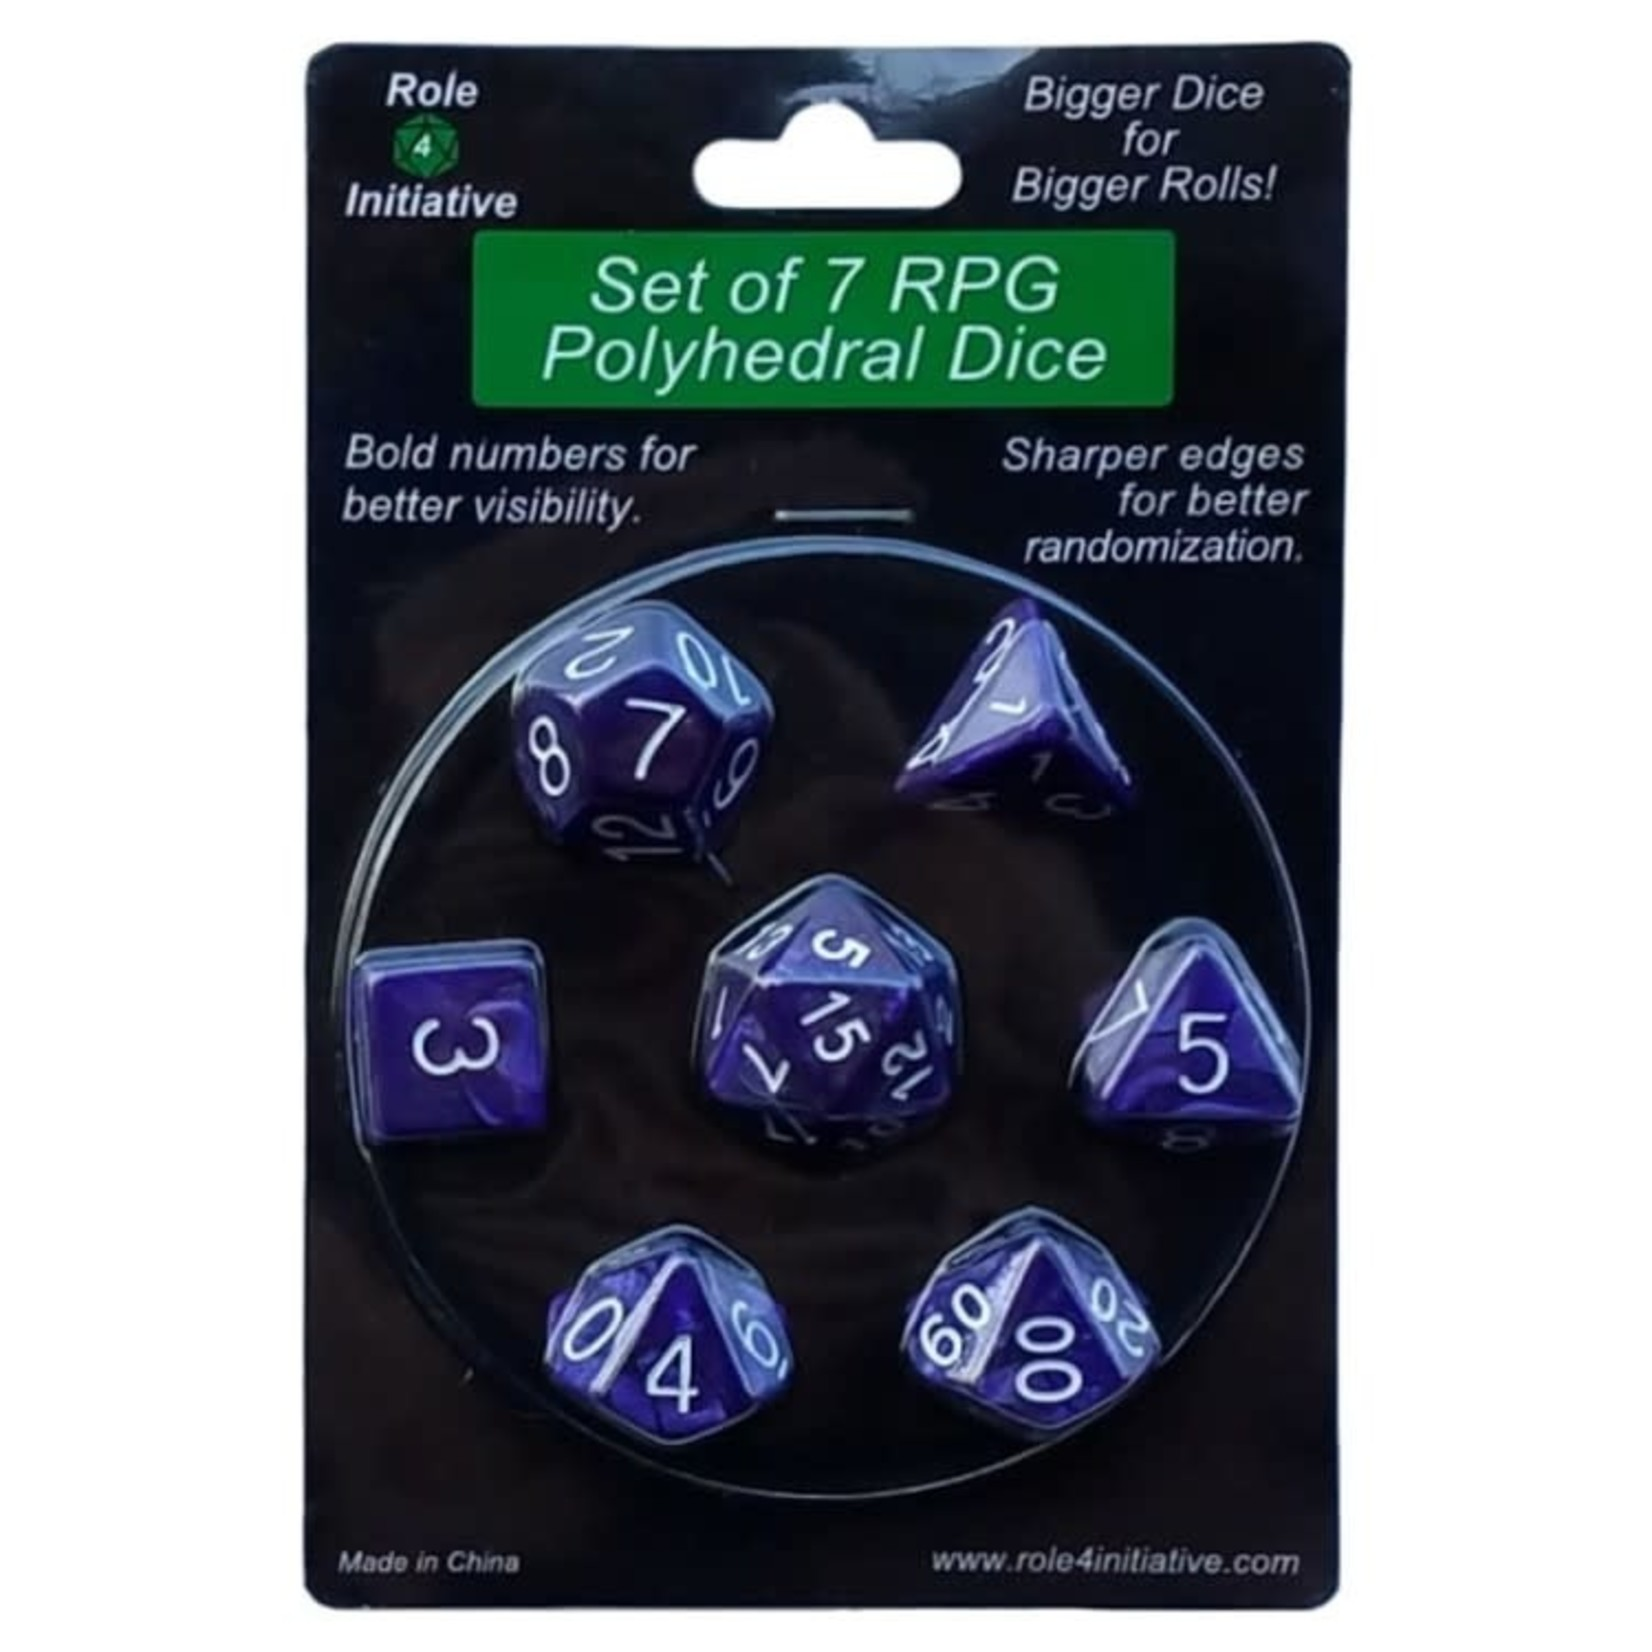 Roll 4 Initiative Polyhedral Dice: Marble Purple w/ White- Set of 7